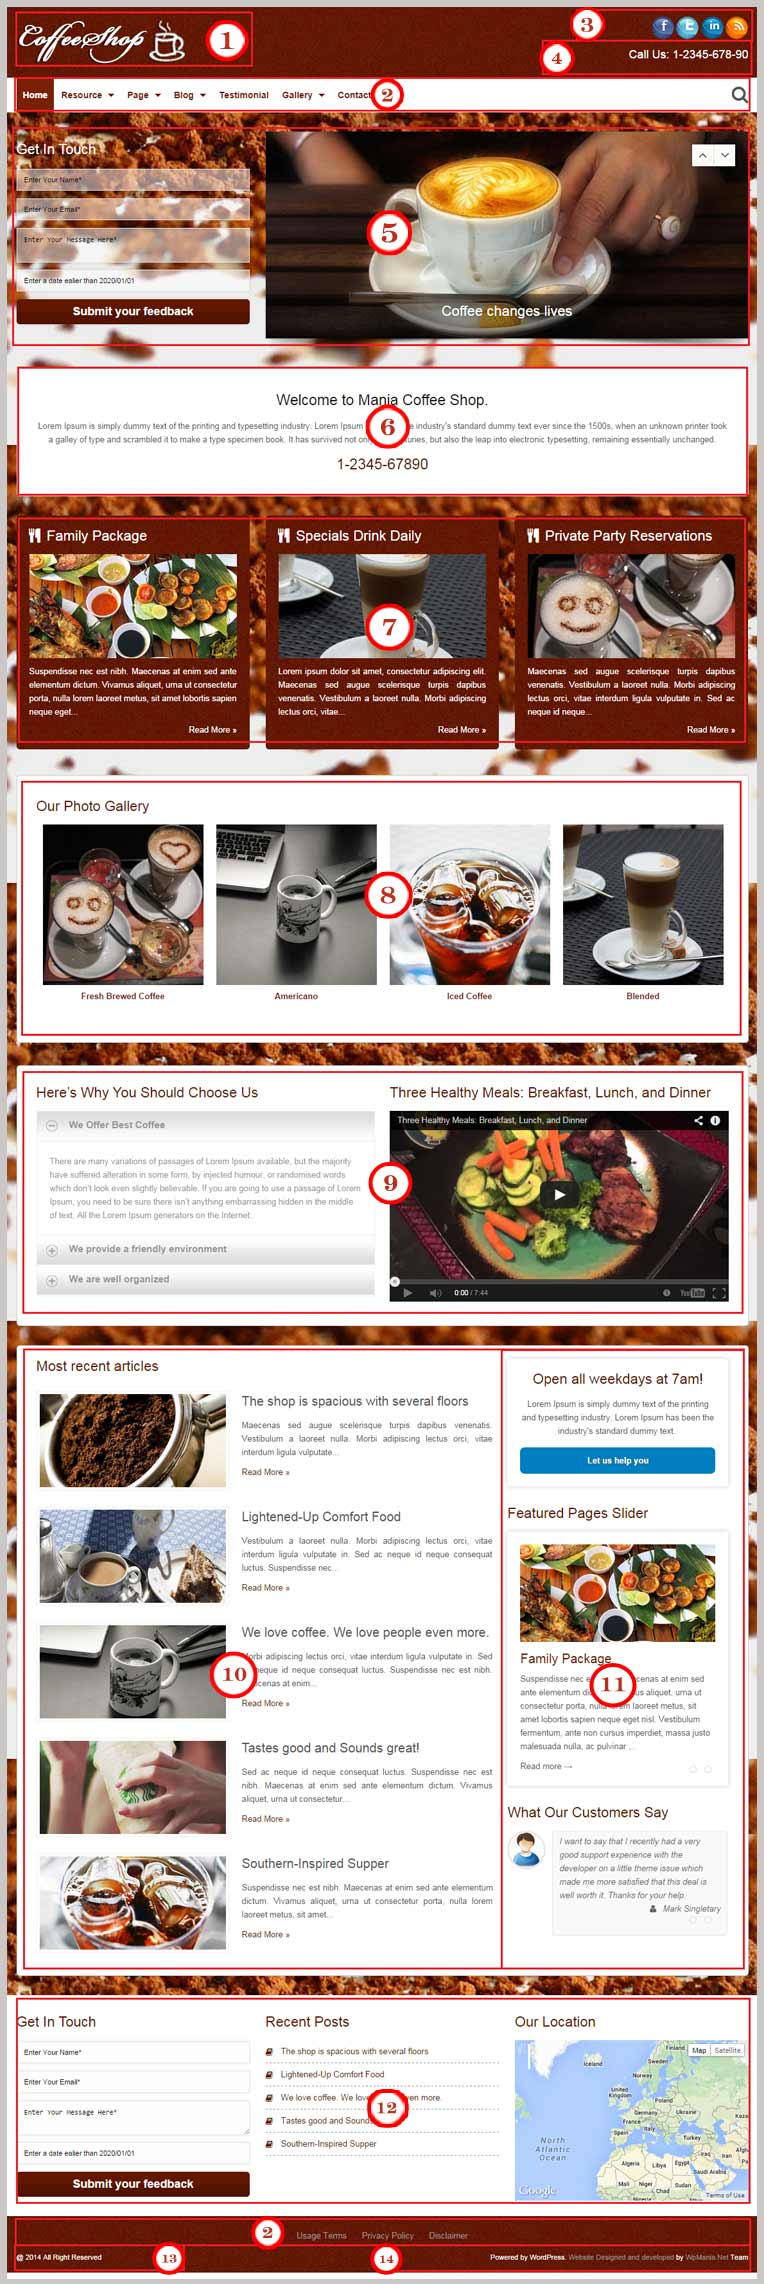 Coffee Shop WordPress Theme Documentation